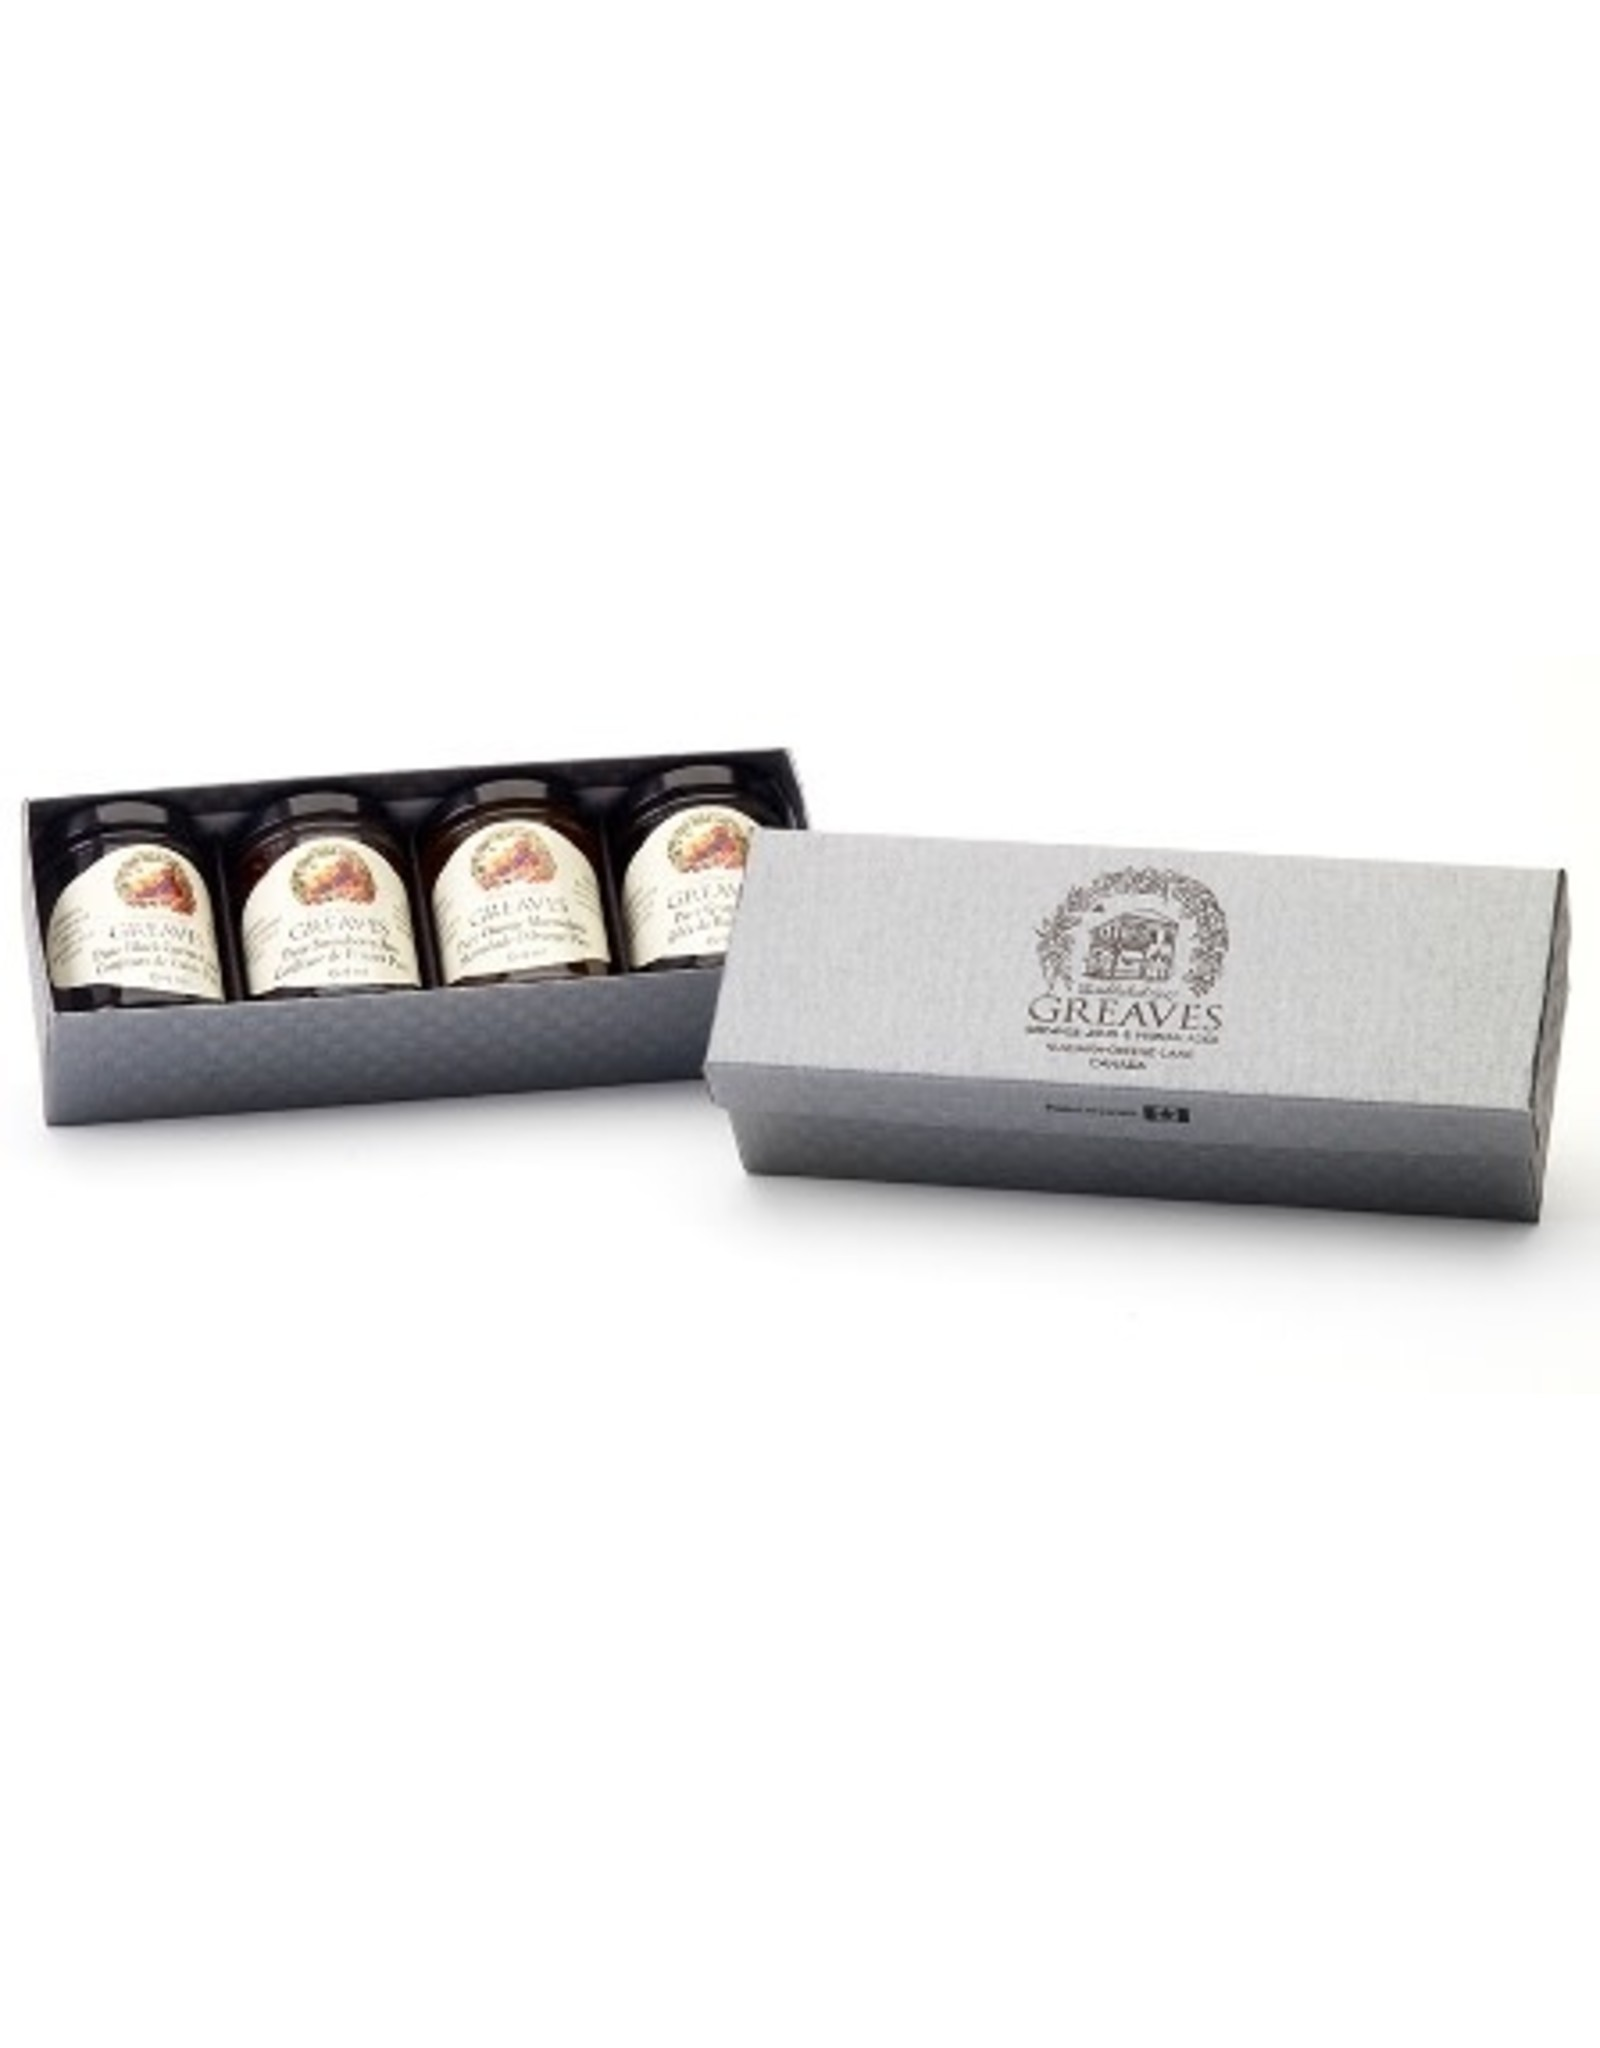 Greaves Jams & Marmalades Ltd. Greaves, Silver Basket Weave Gift Boxes, 4 x 64ml